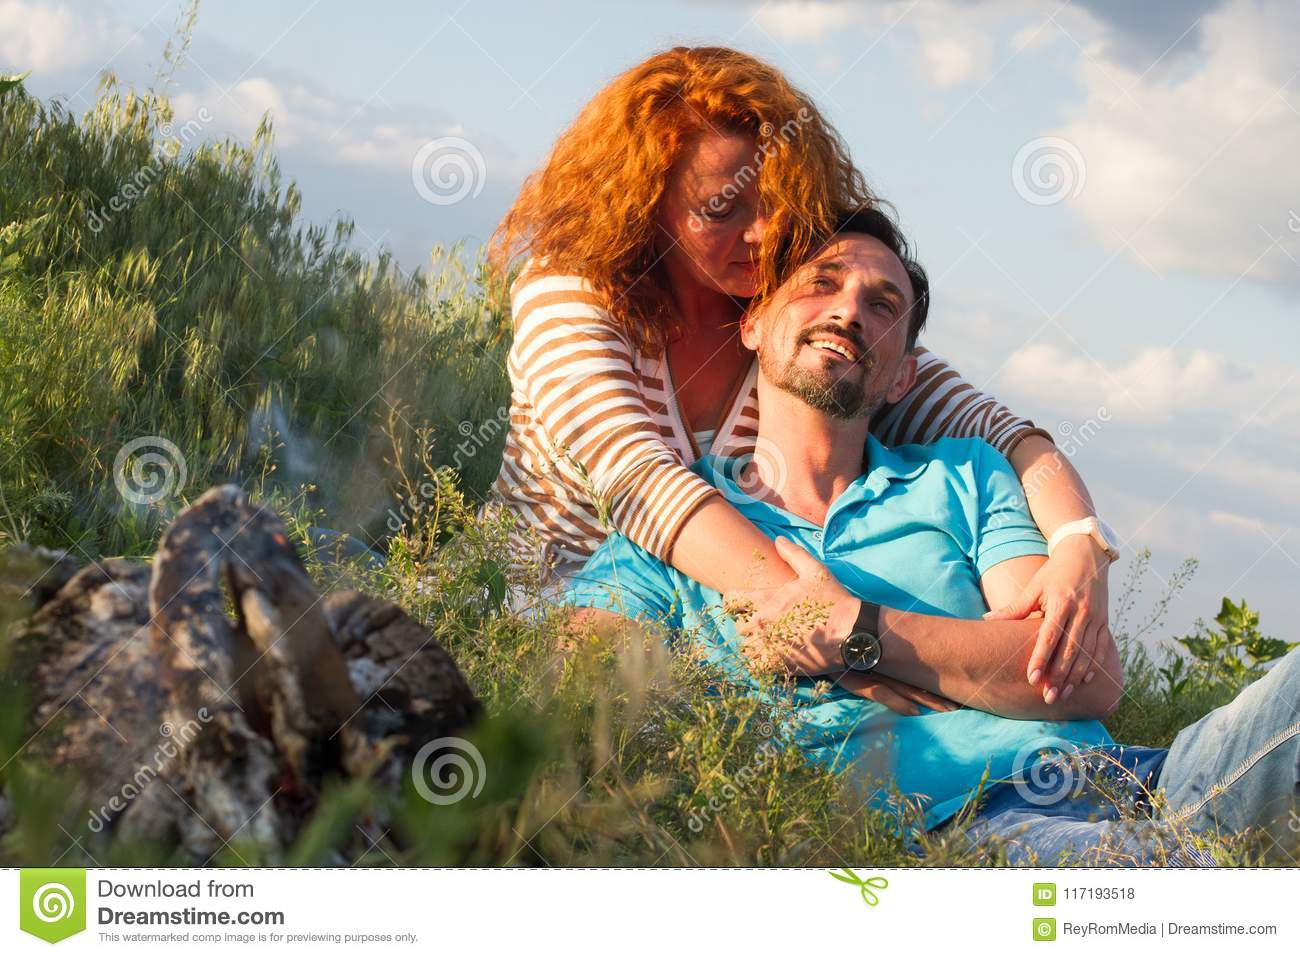 Portrait Of Happy Couple Laying On Blanket on grass near fireplace on clouds background